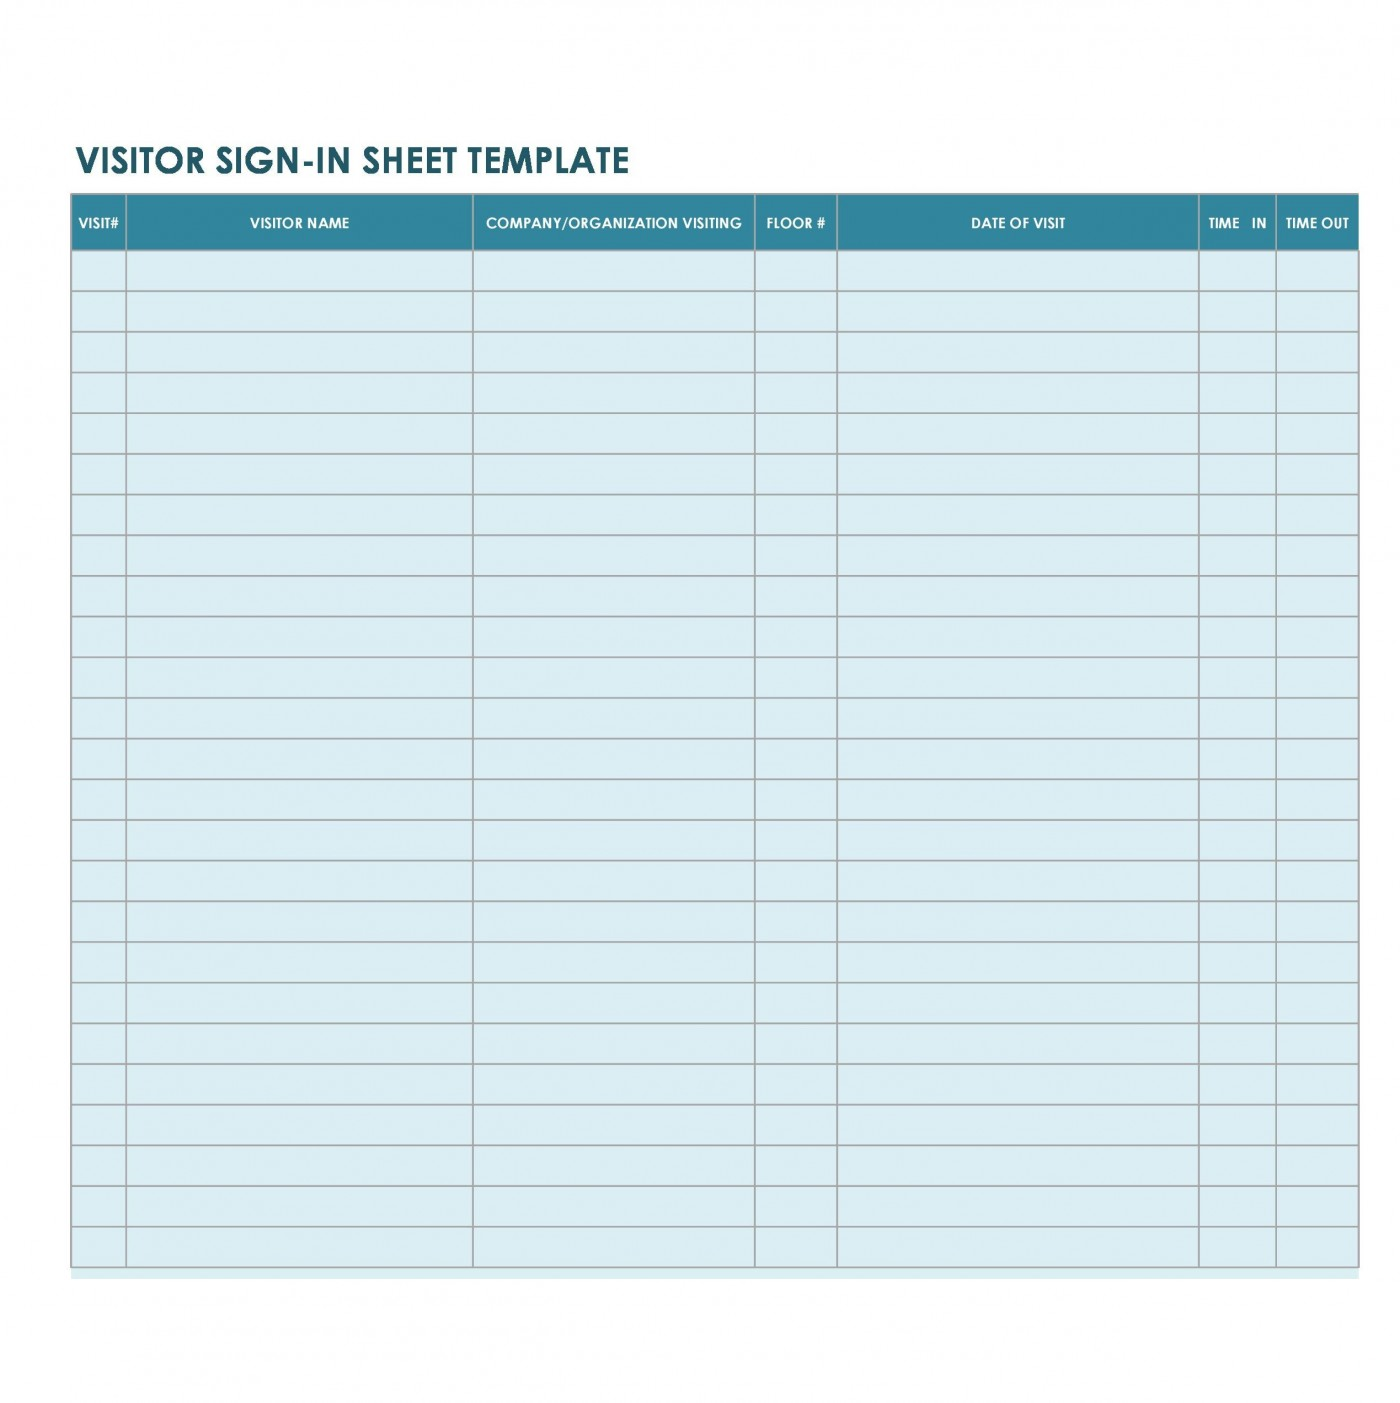 008 Rare Visitor Sign In Sheet Template Pdf Design 1400